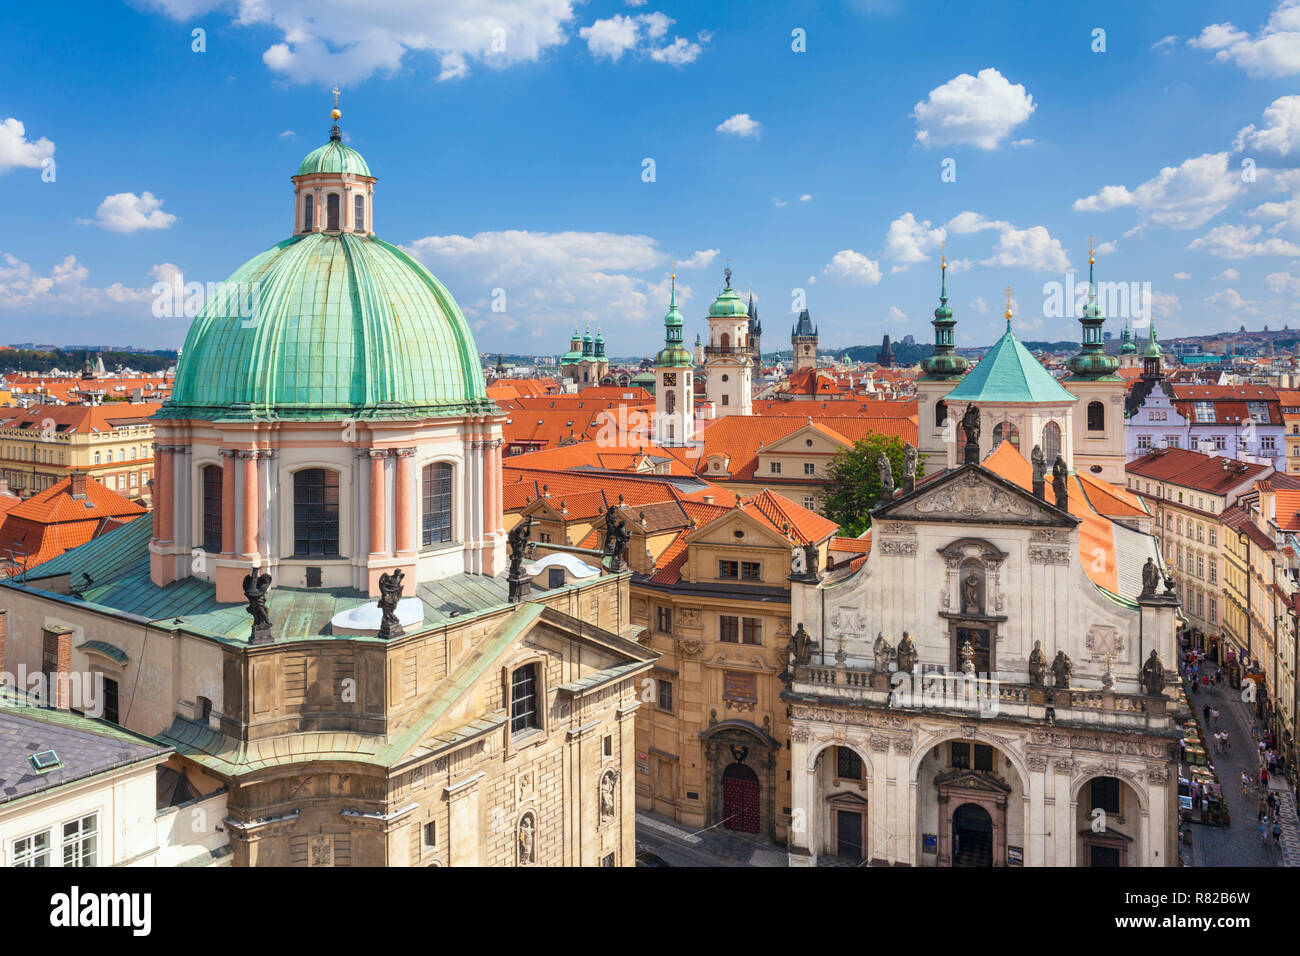 Prague old town Staré Město St. Francis Of Assisi Church Rooftop spires and towers of churches and old baroque buildings Prague Czech Republic Europe Stock Photo